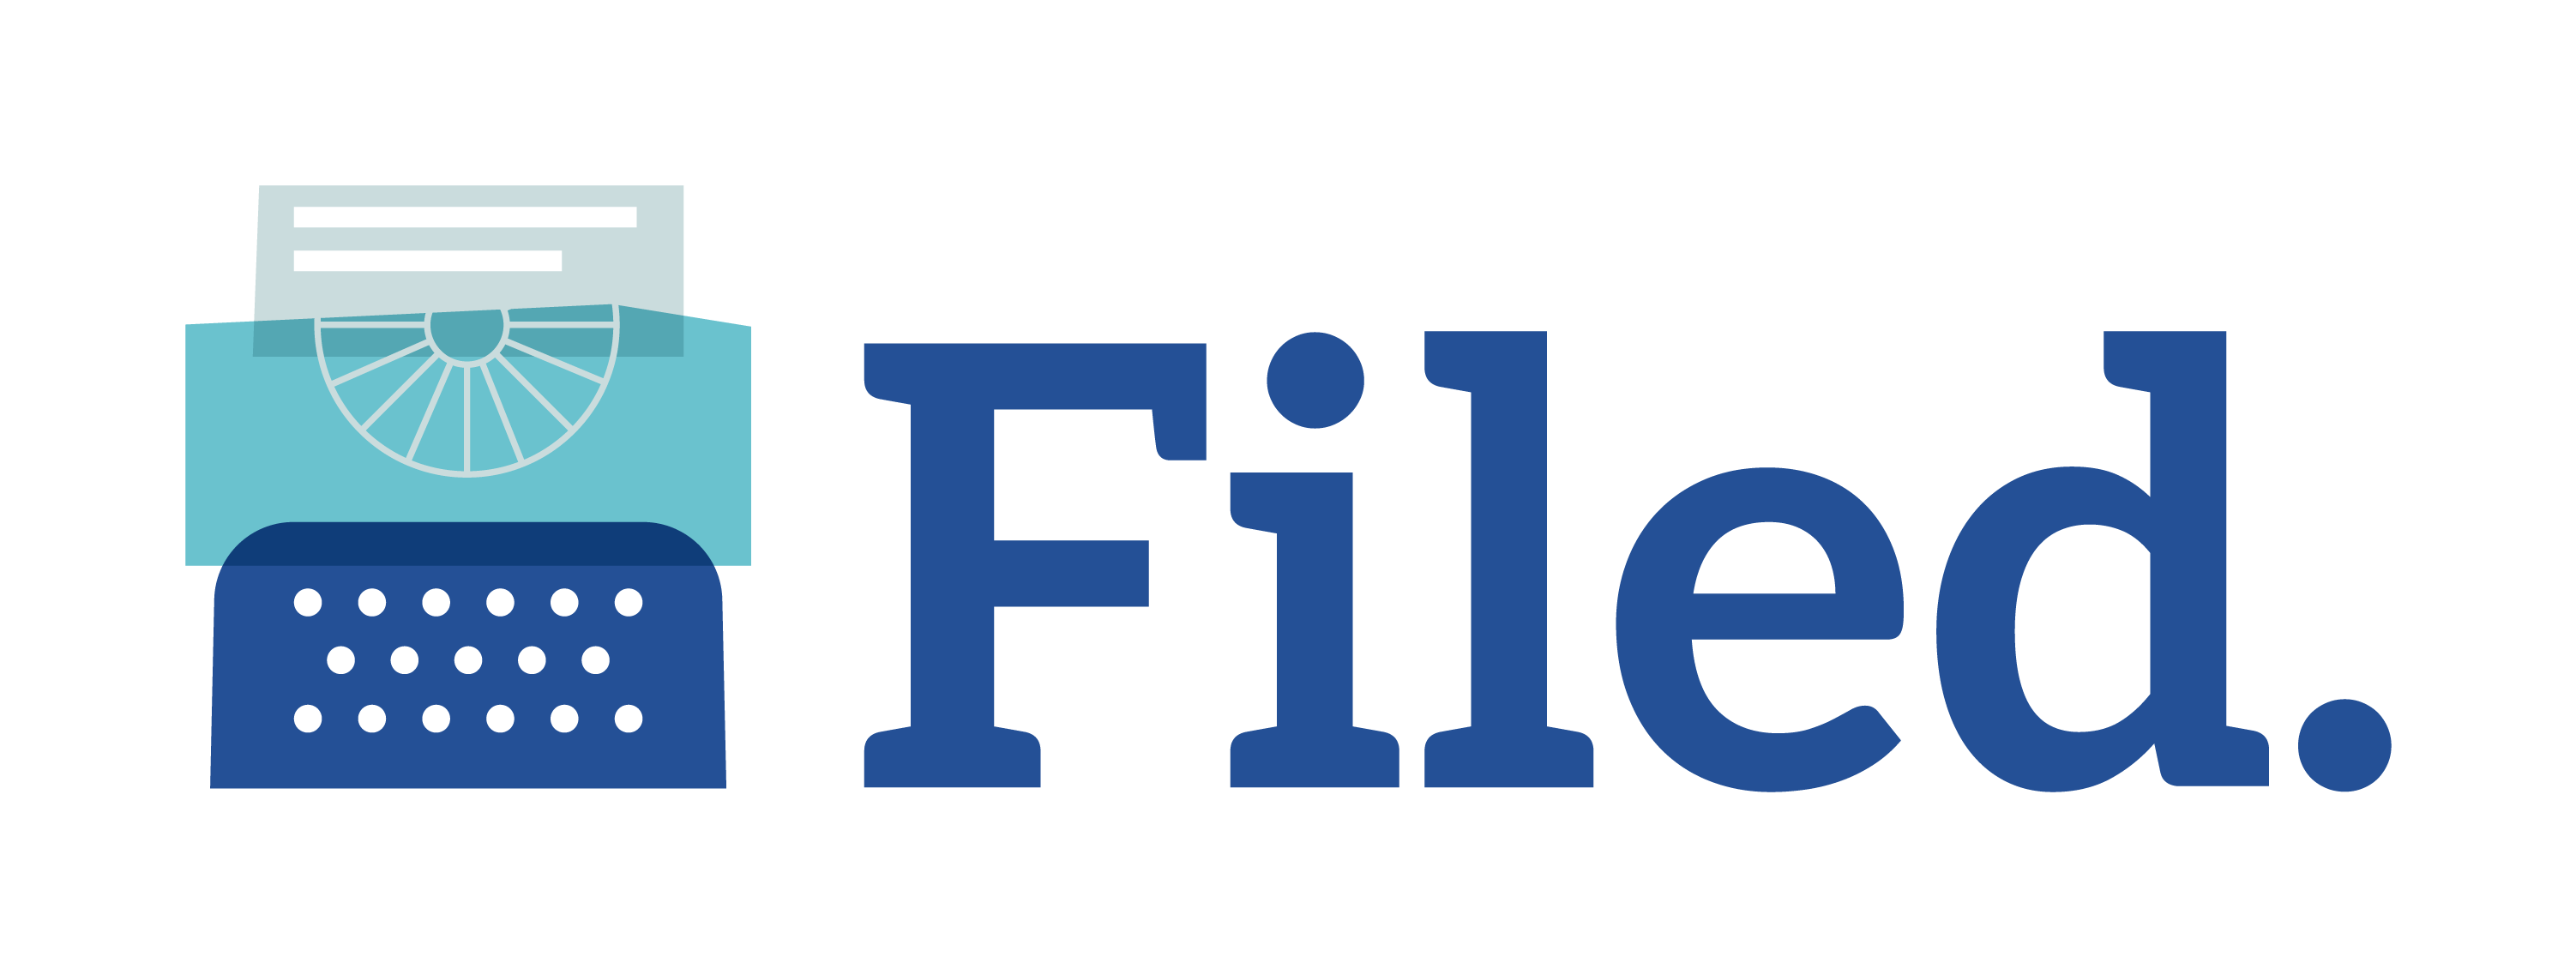 Introducing Filed